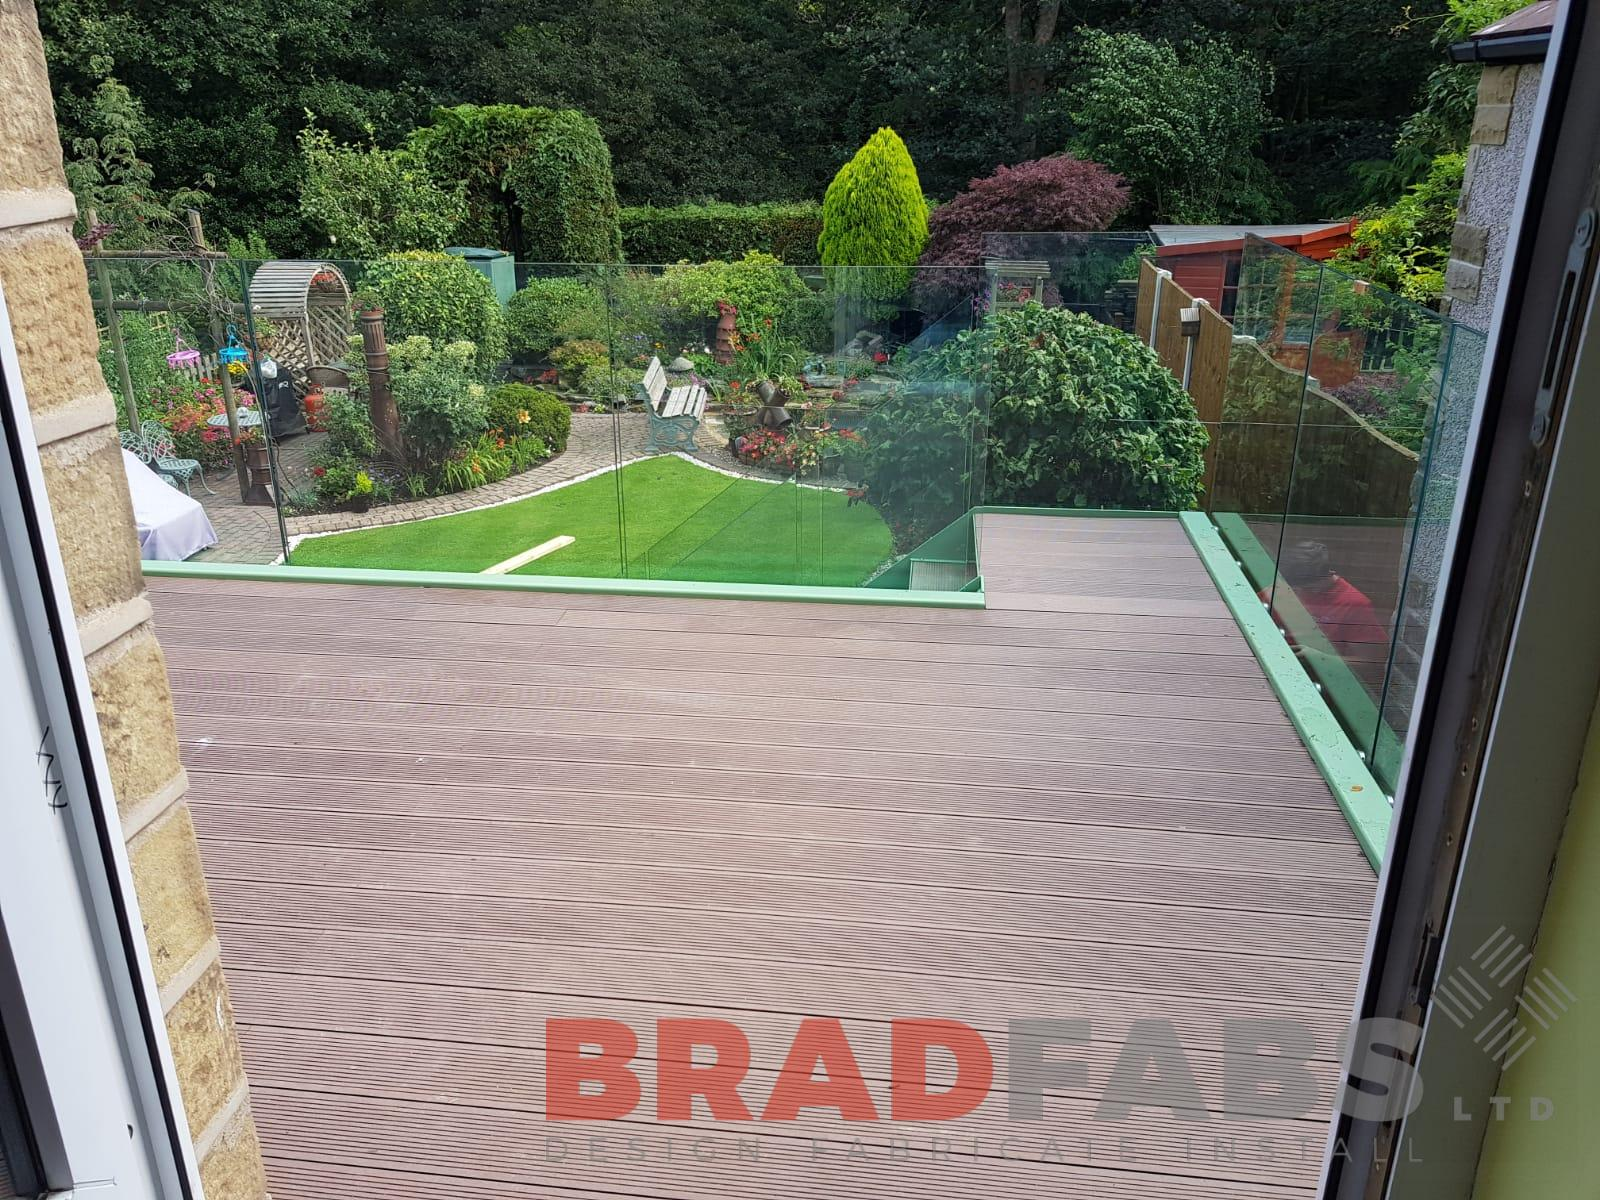 mild steel galvanised and powder coated balcony frame with bolt on infinity glass balustrade and complete with composite decked flooring by Bradfabs